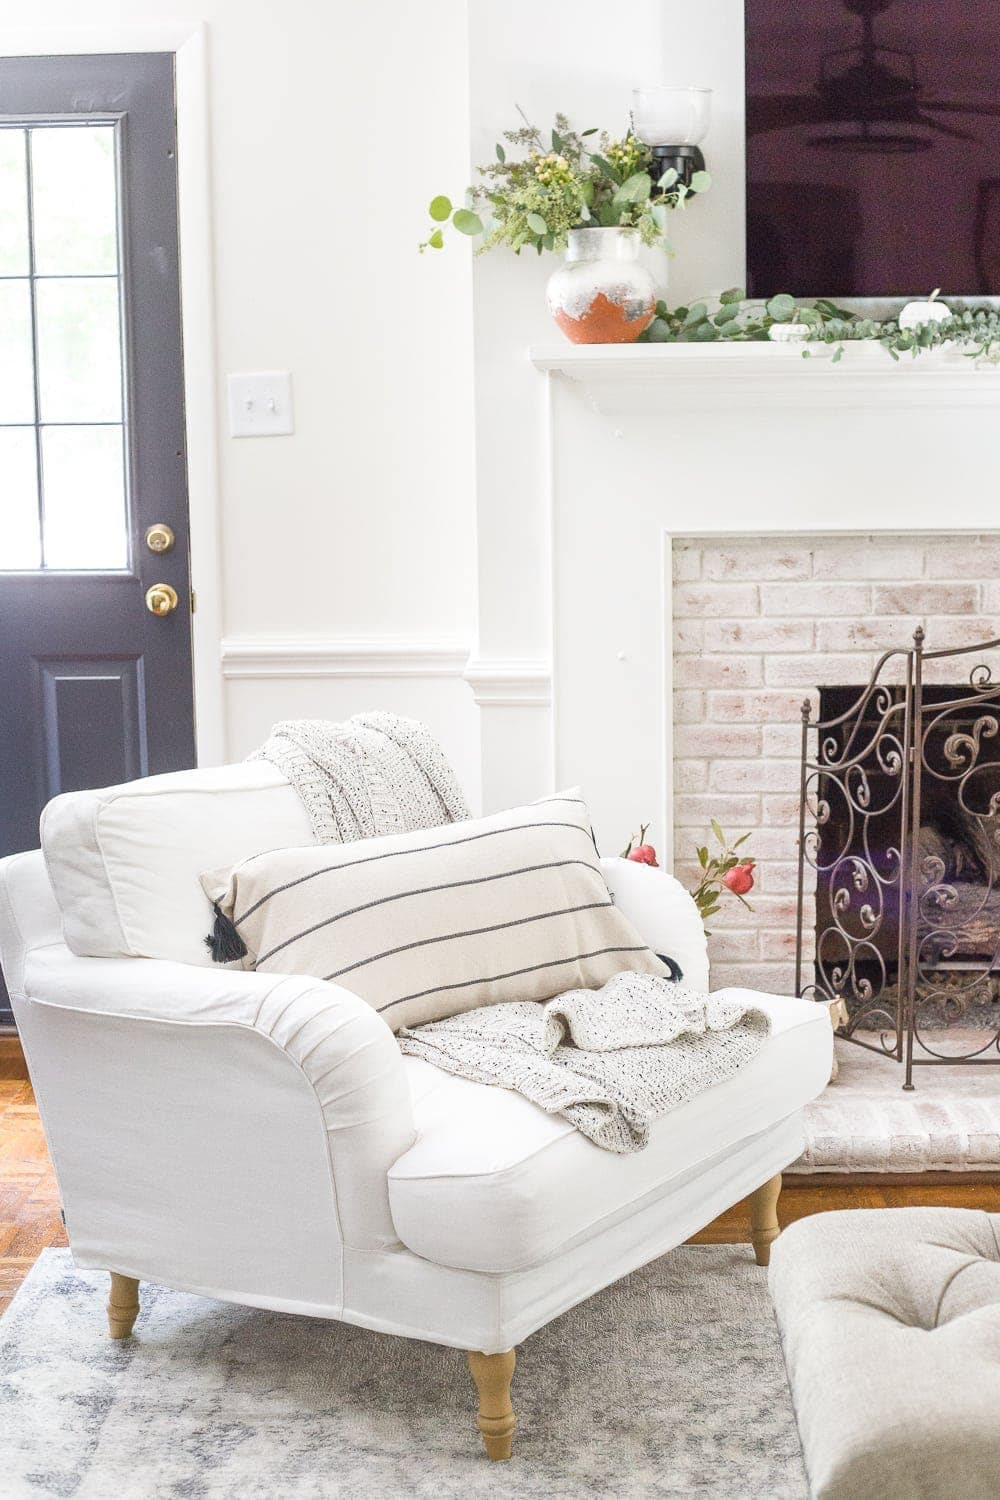 Money-saving decorating tips for adding coziness and texture to a space for fall decor without having to shop for it.